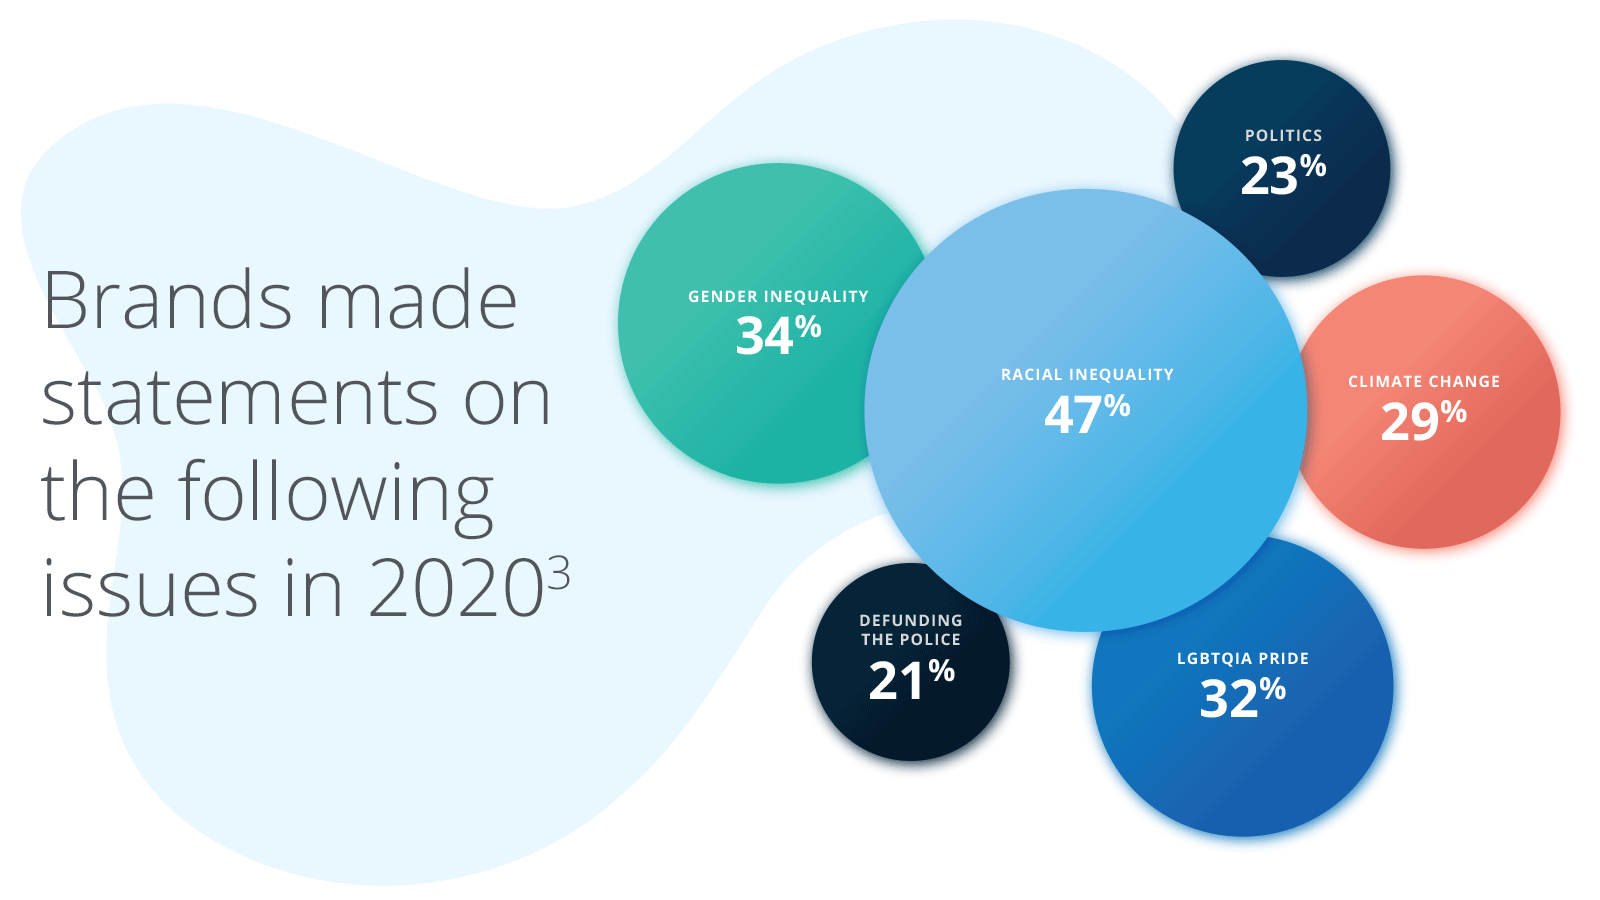 Brands made statements on the following issues in 2020(3)